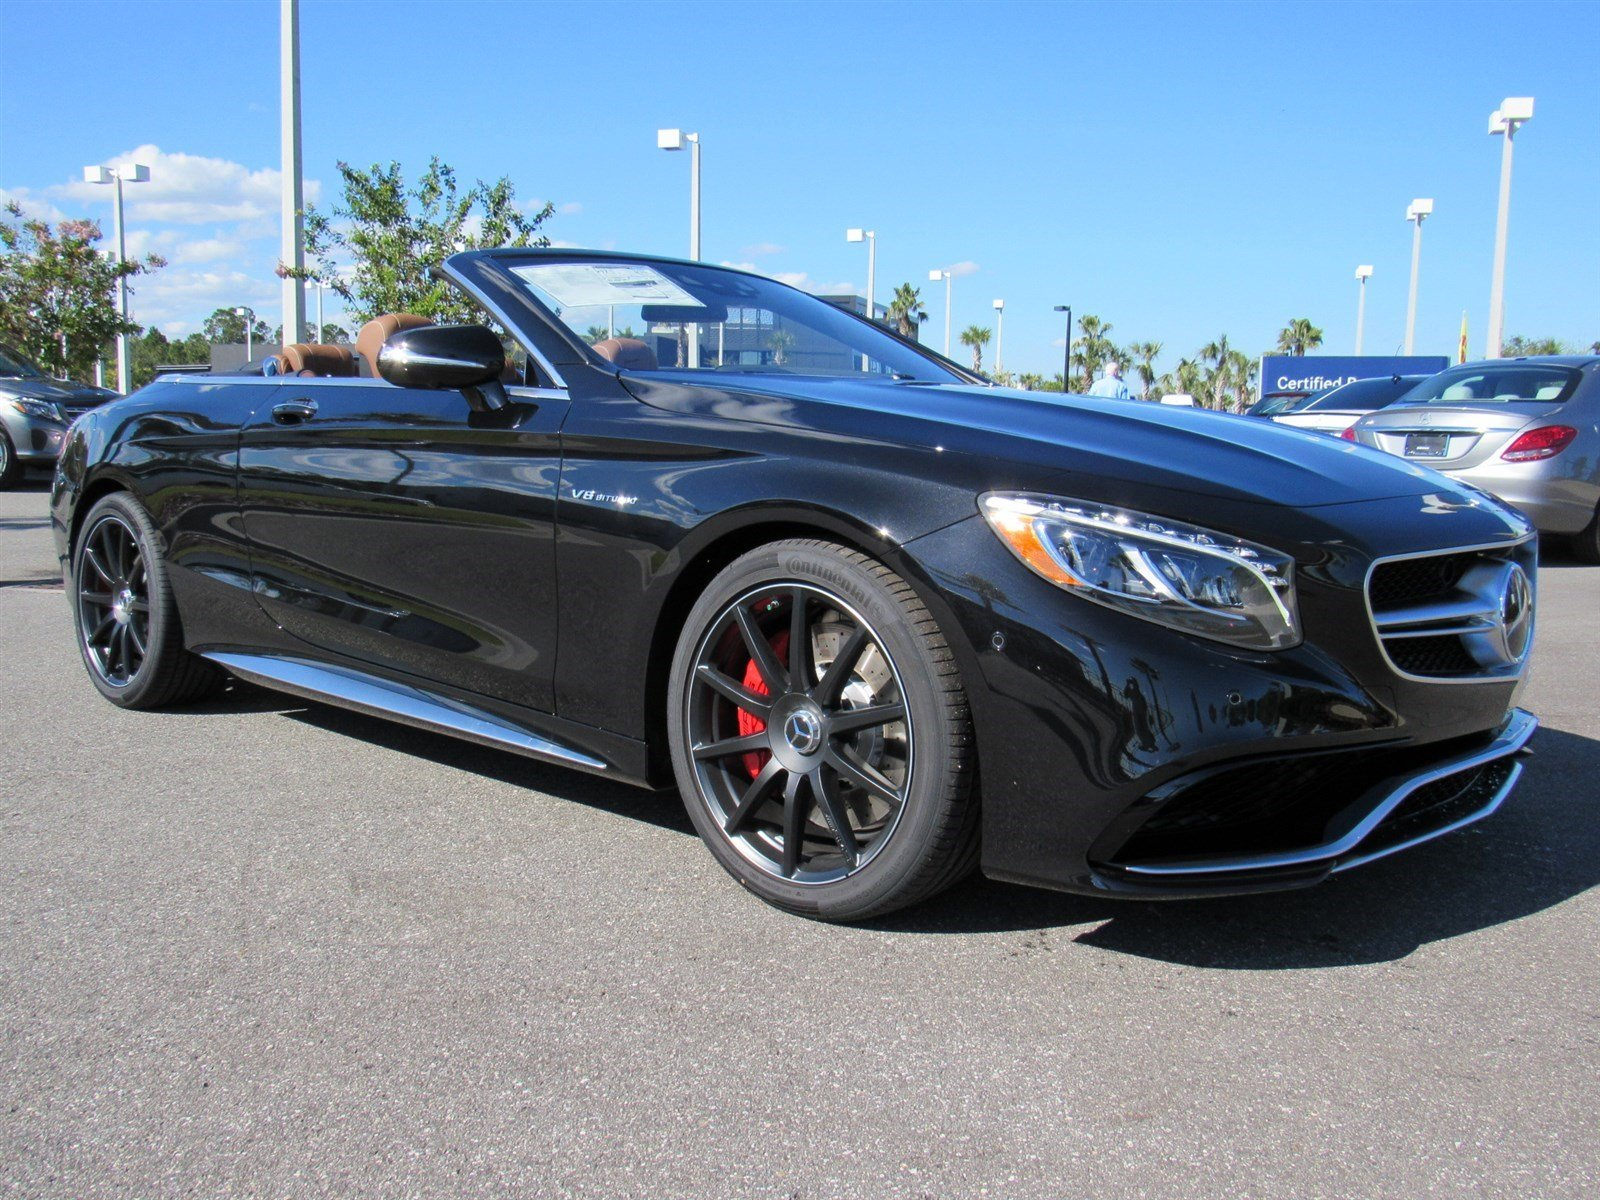 new 2017 mercedes benz s class amg s63 4matic convertible in daytona beach ha024301 mercedes. Black Bedroom Furniture Sets. Home Design Ideas